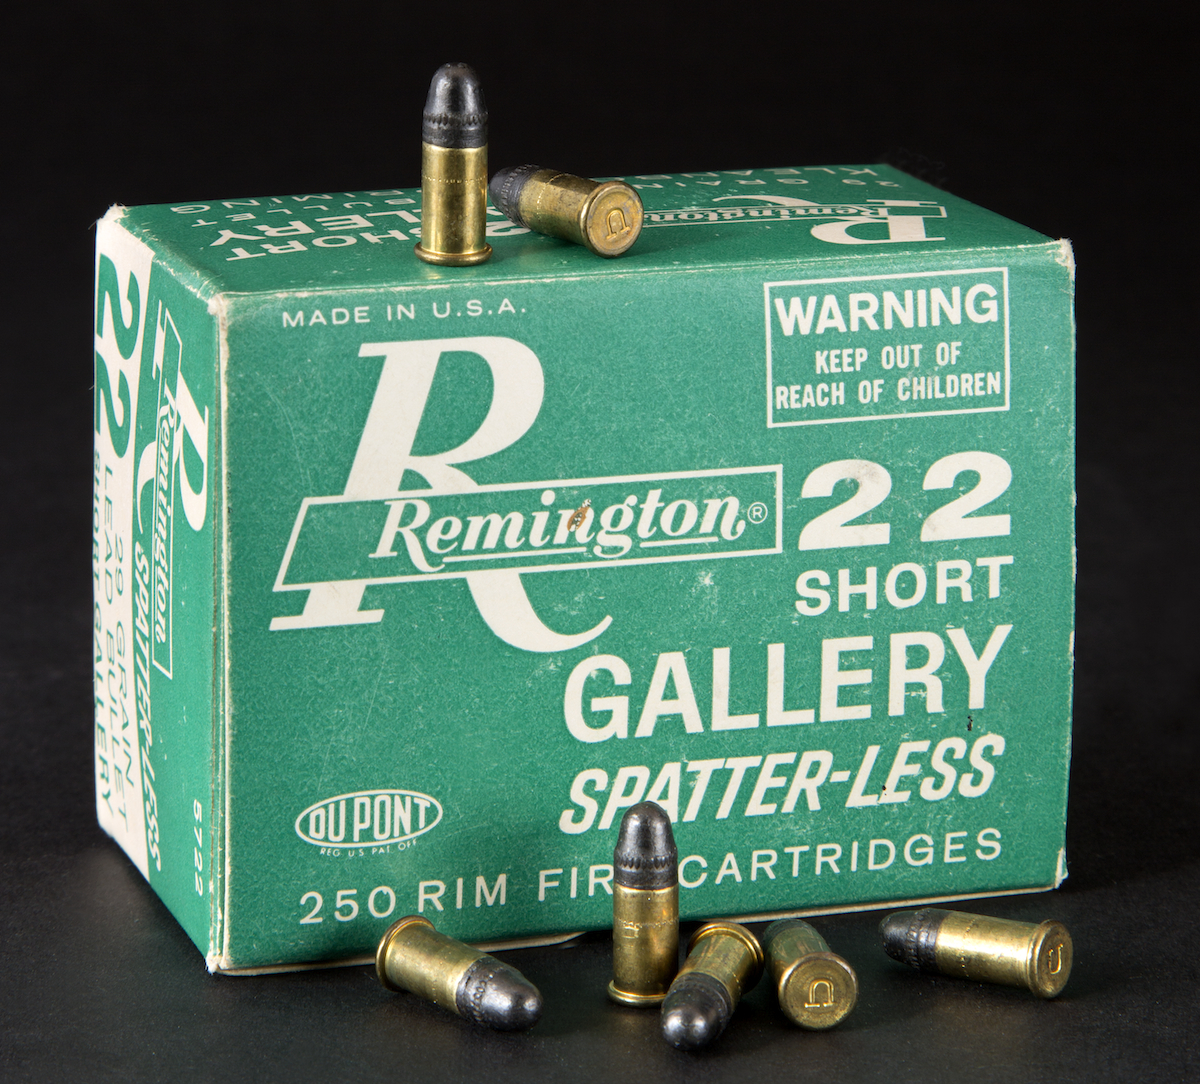 Box of Remington .22 Short Cartridges.